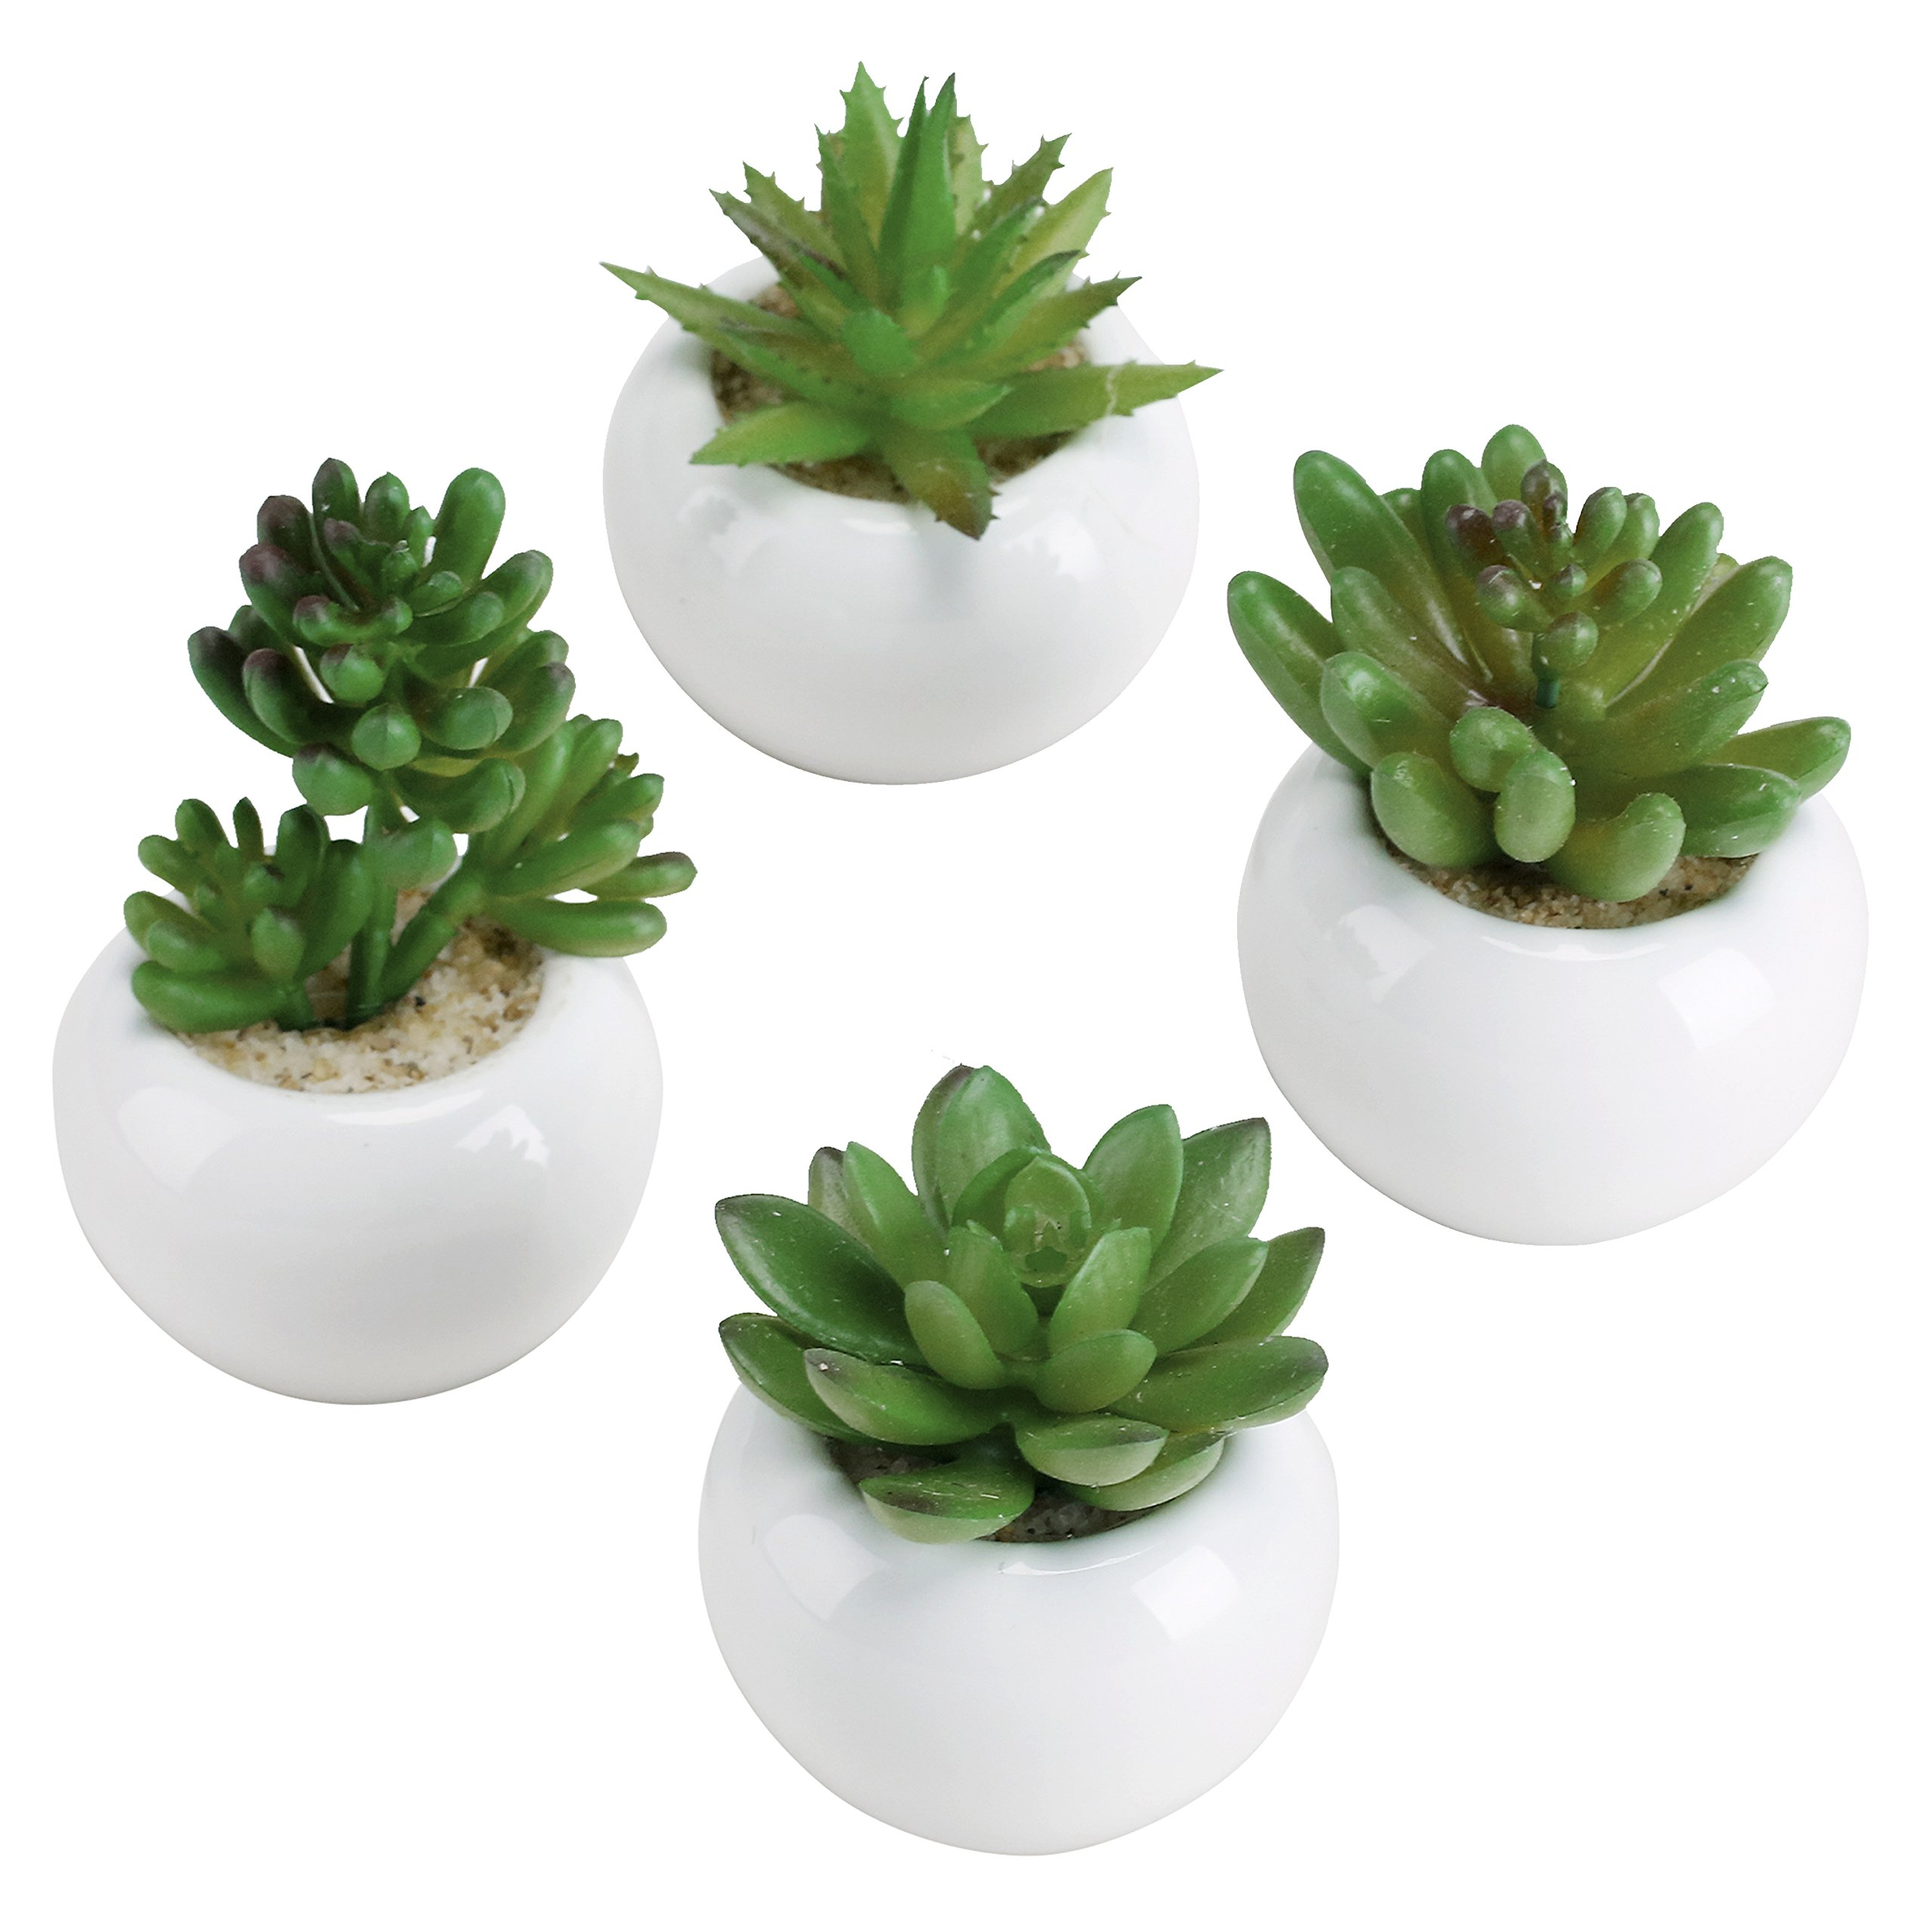 3-inch Mixed Green Artificial Succulent Plants in Round Glazed White Ceramic Pots, Set of 4 by MyGift (Image #1)